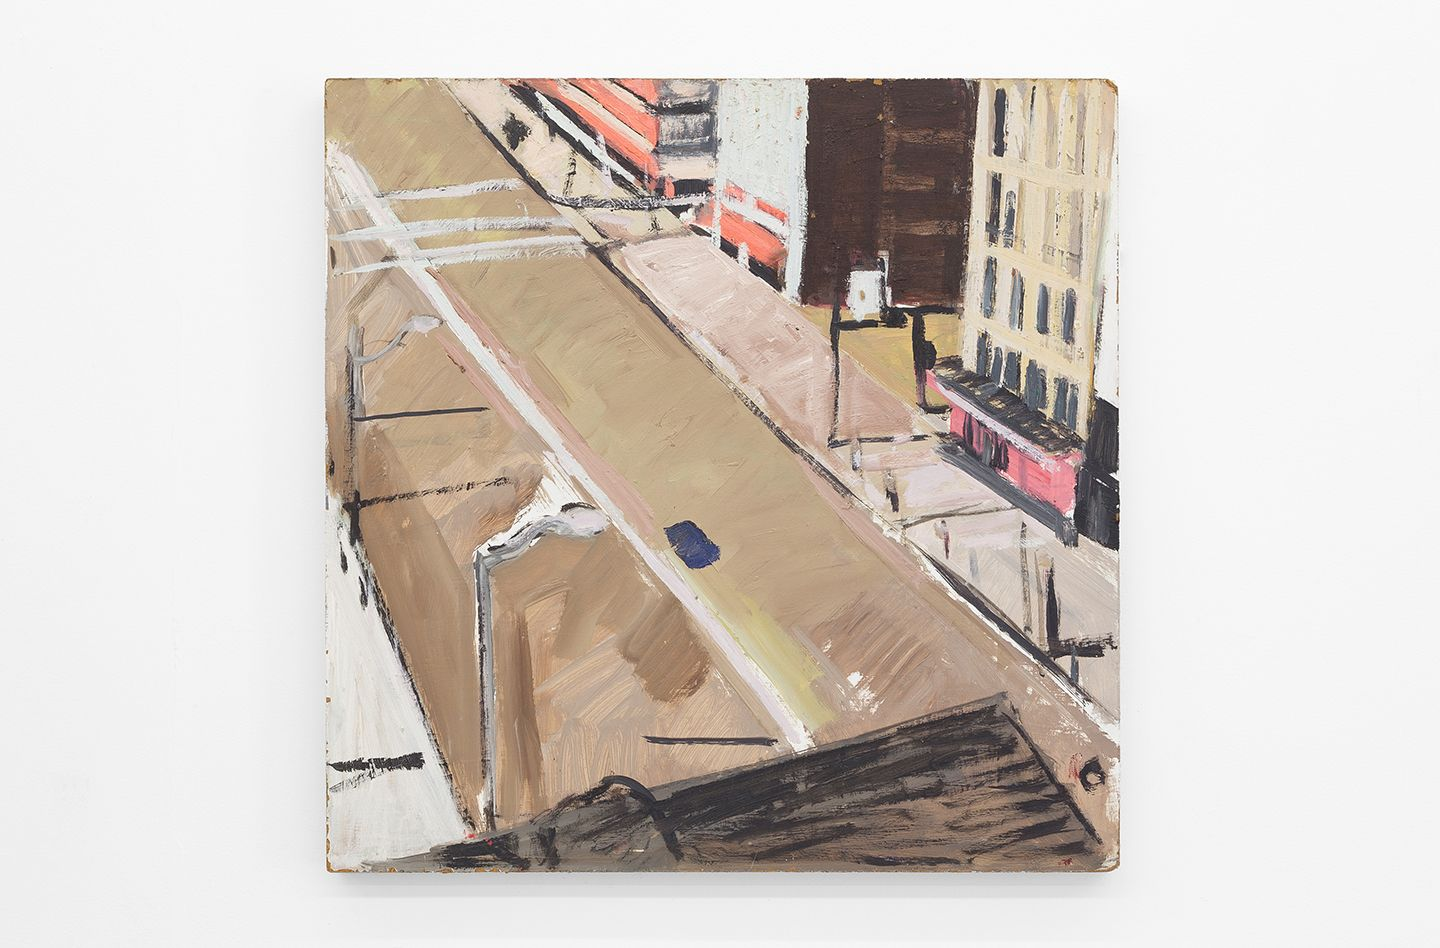 Mary Ann Aitken, Untitled (Broadway), 1985 - 89, Oil on masonite, 24 x 24 inches (61 x 61 cm)